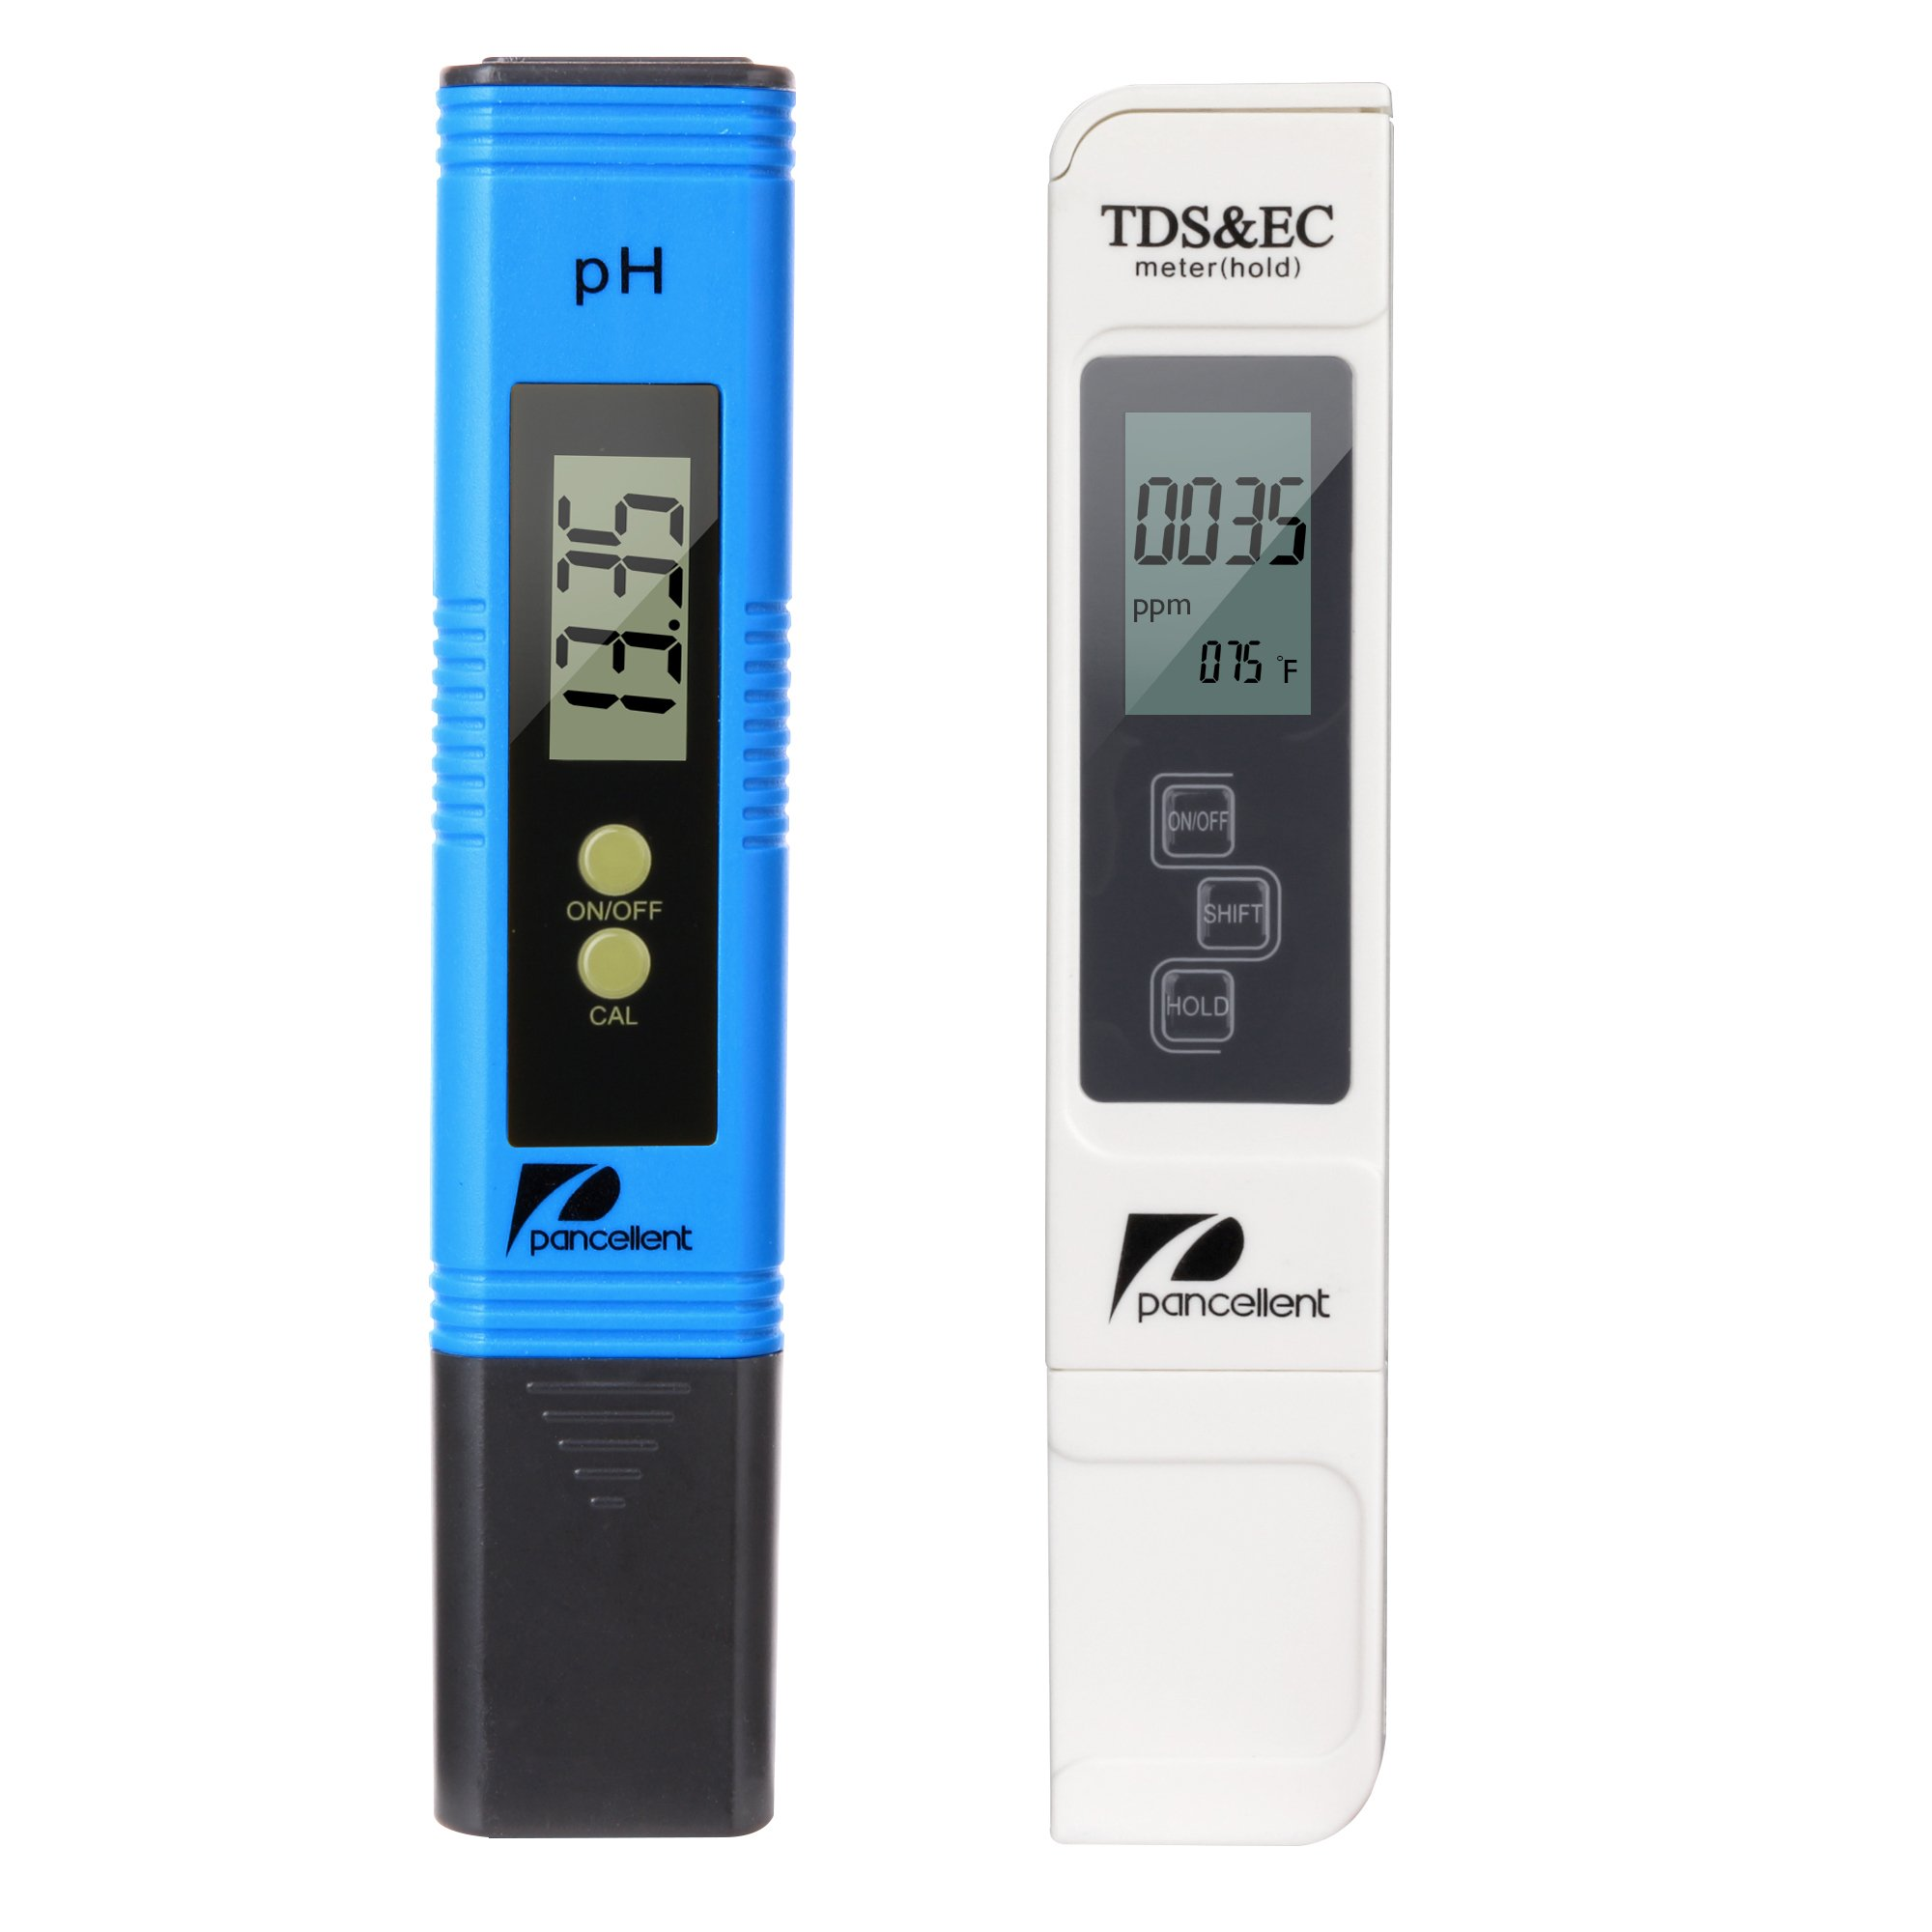 Water Quality Test Meter Pancellent TDS PH EC Temperature 4 in 1 Kit (Blue) by Pancellent